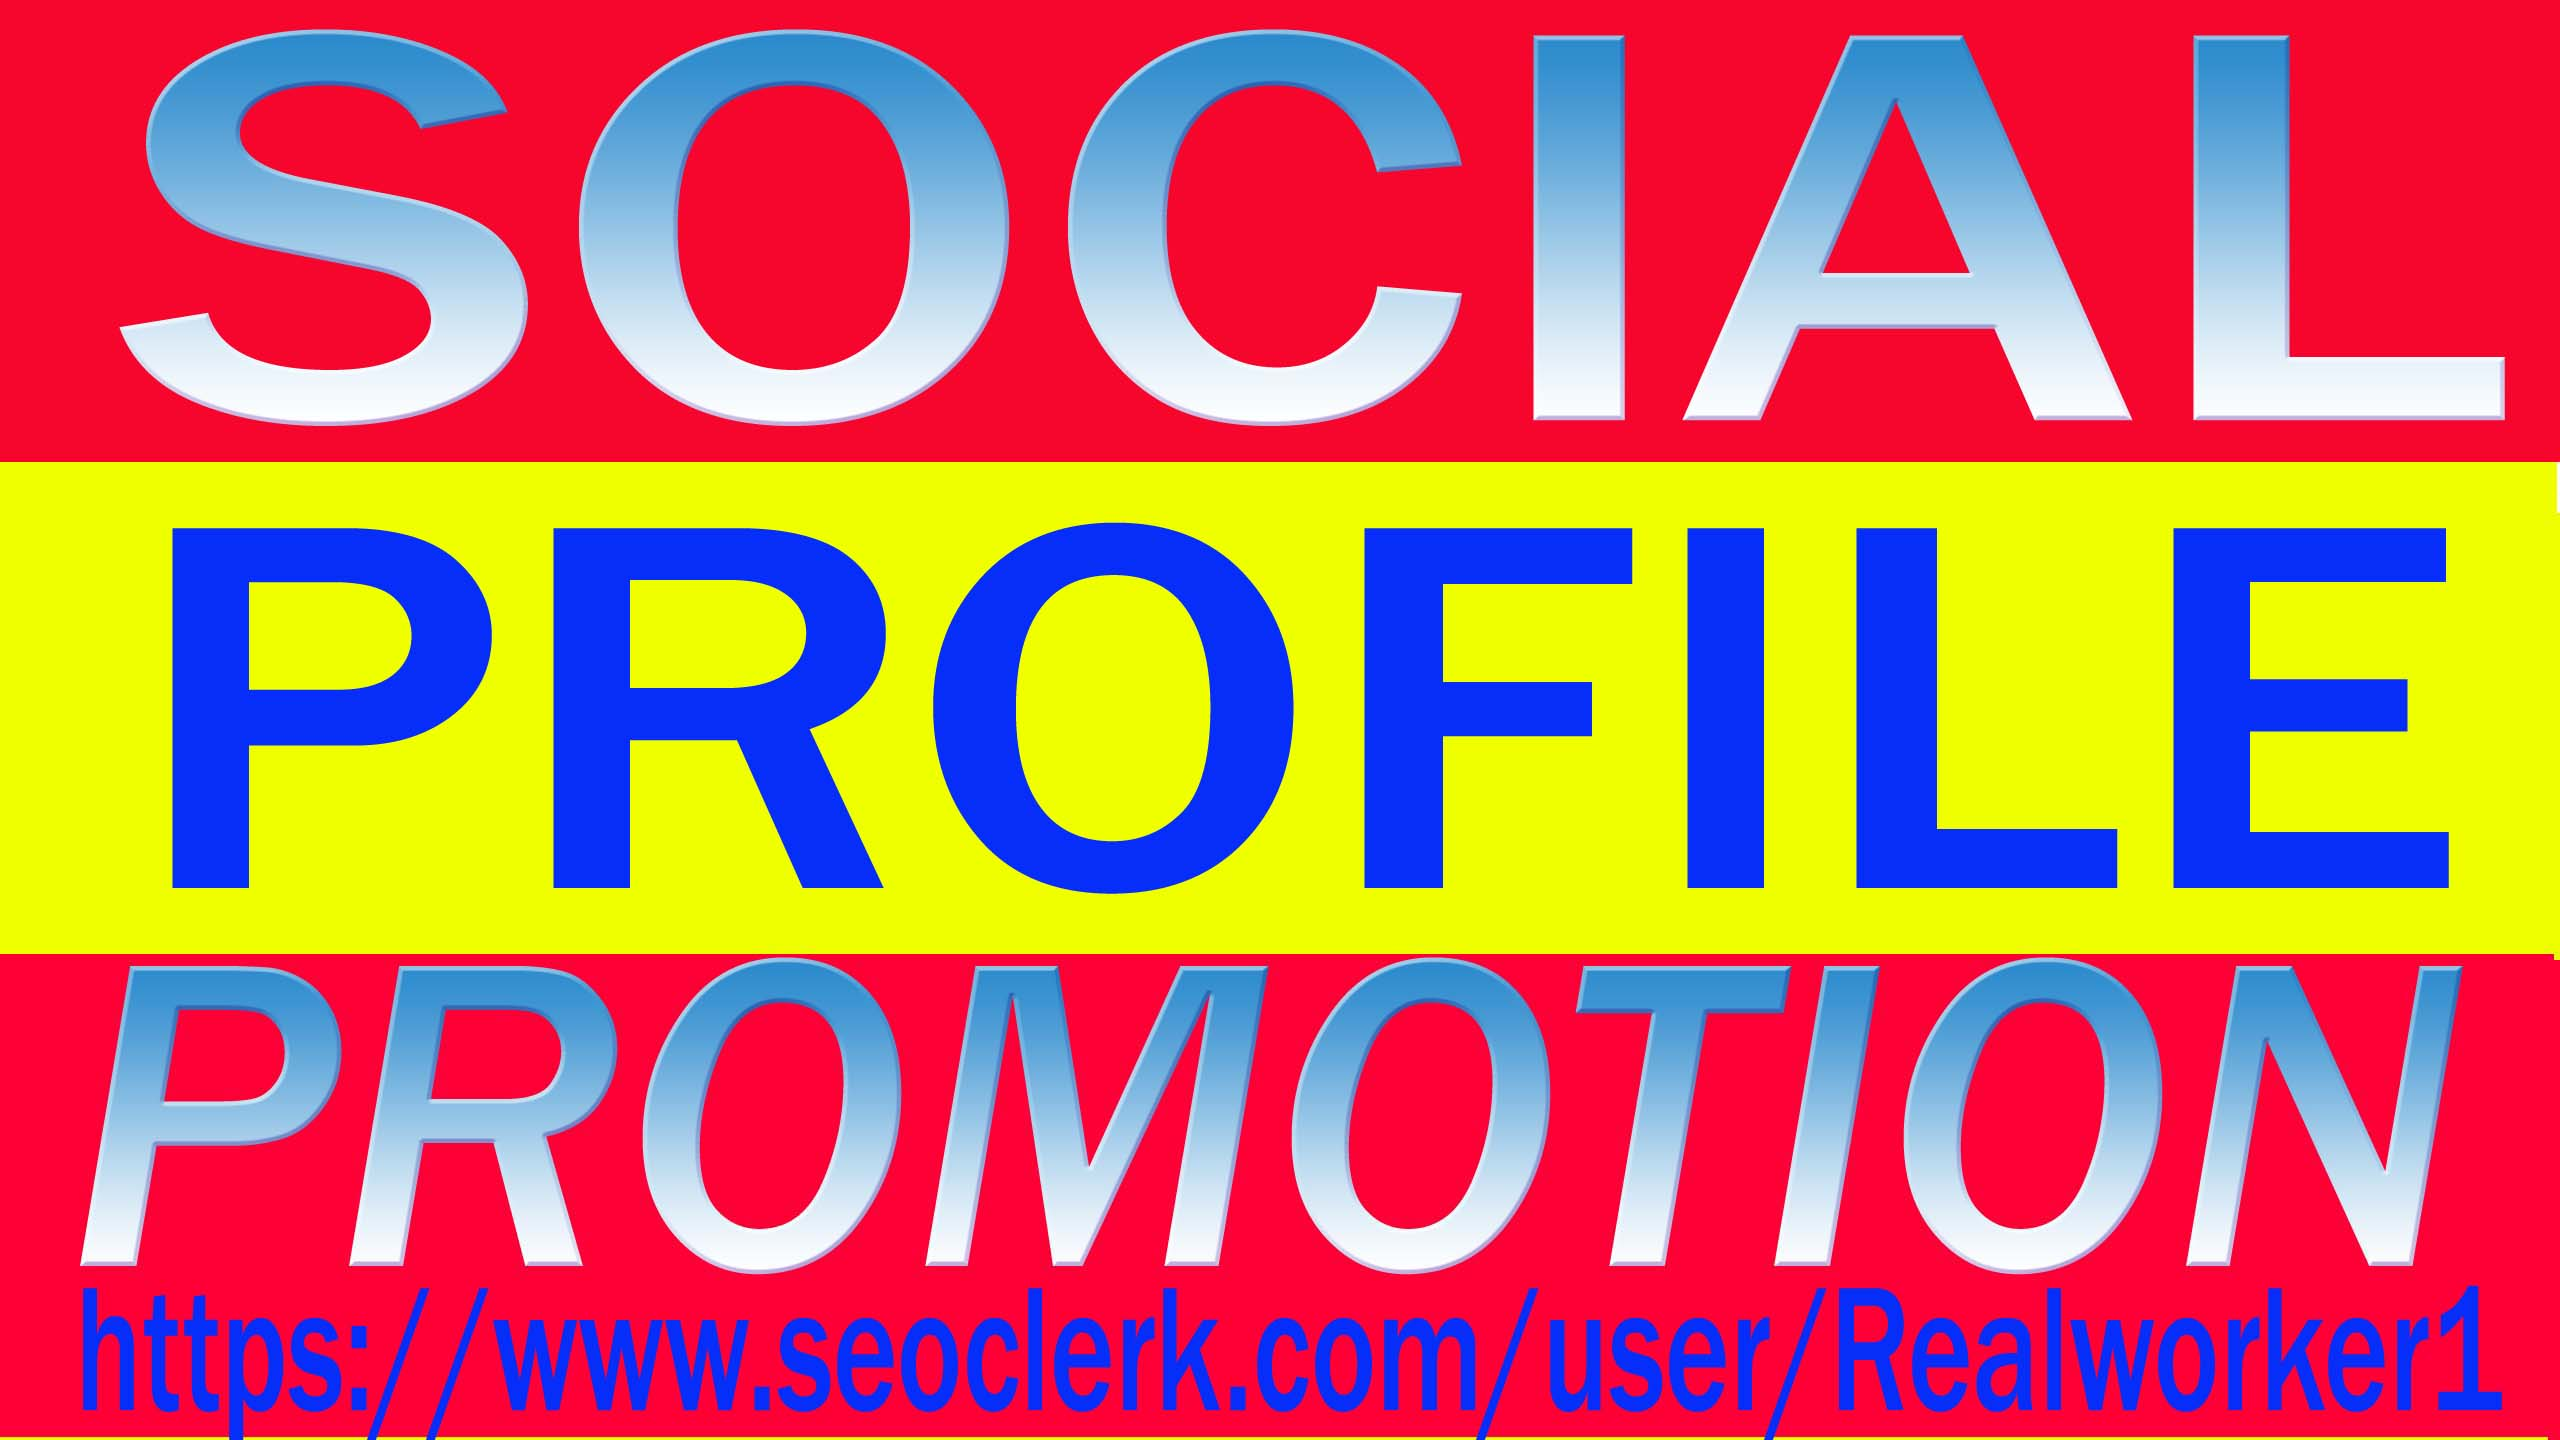 Instant Start Social Video Post Promotion Marketing With Fast Deliver